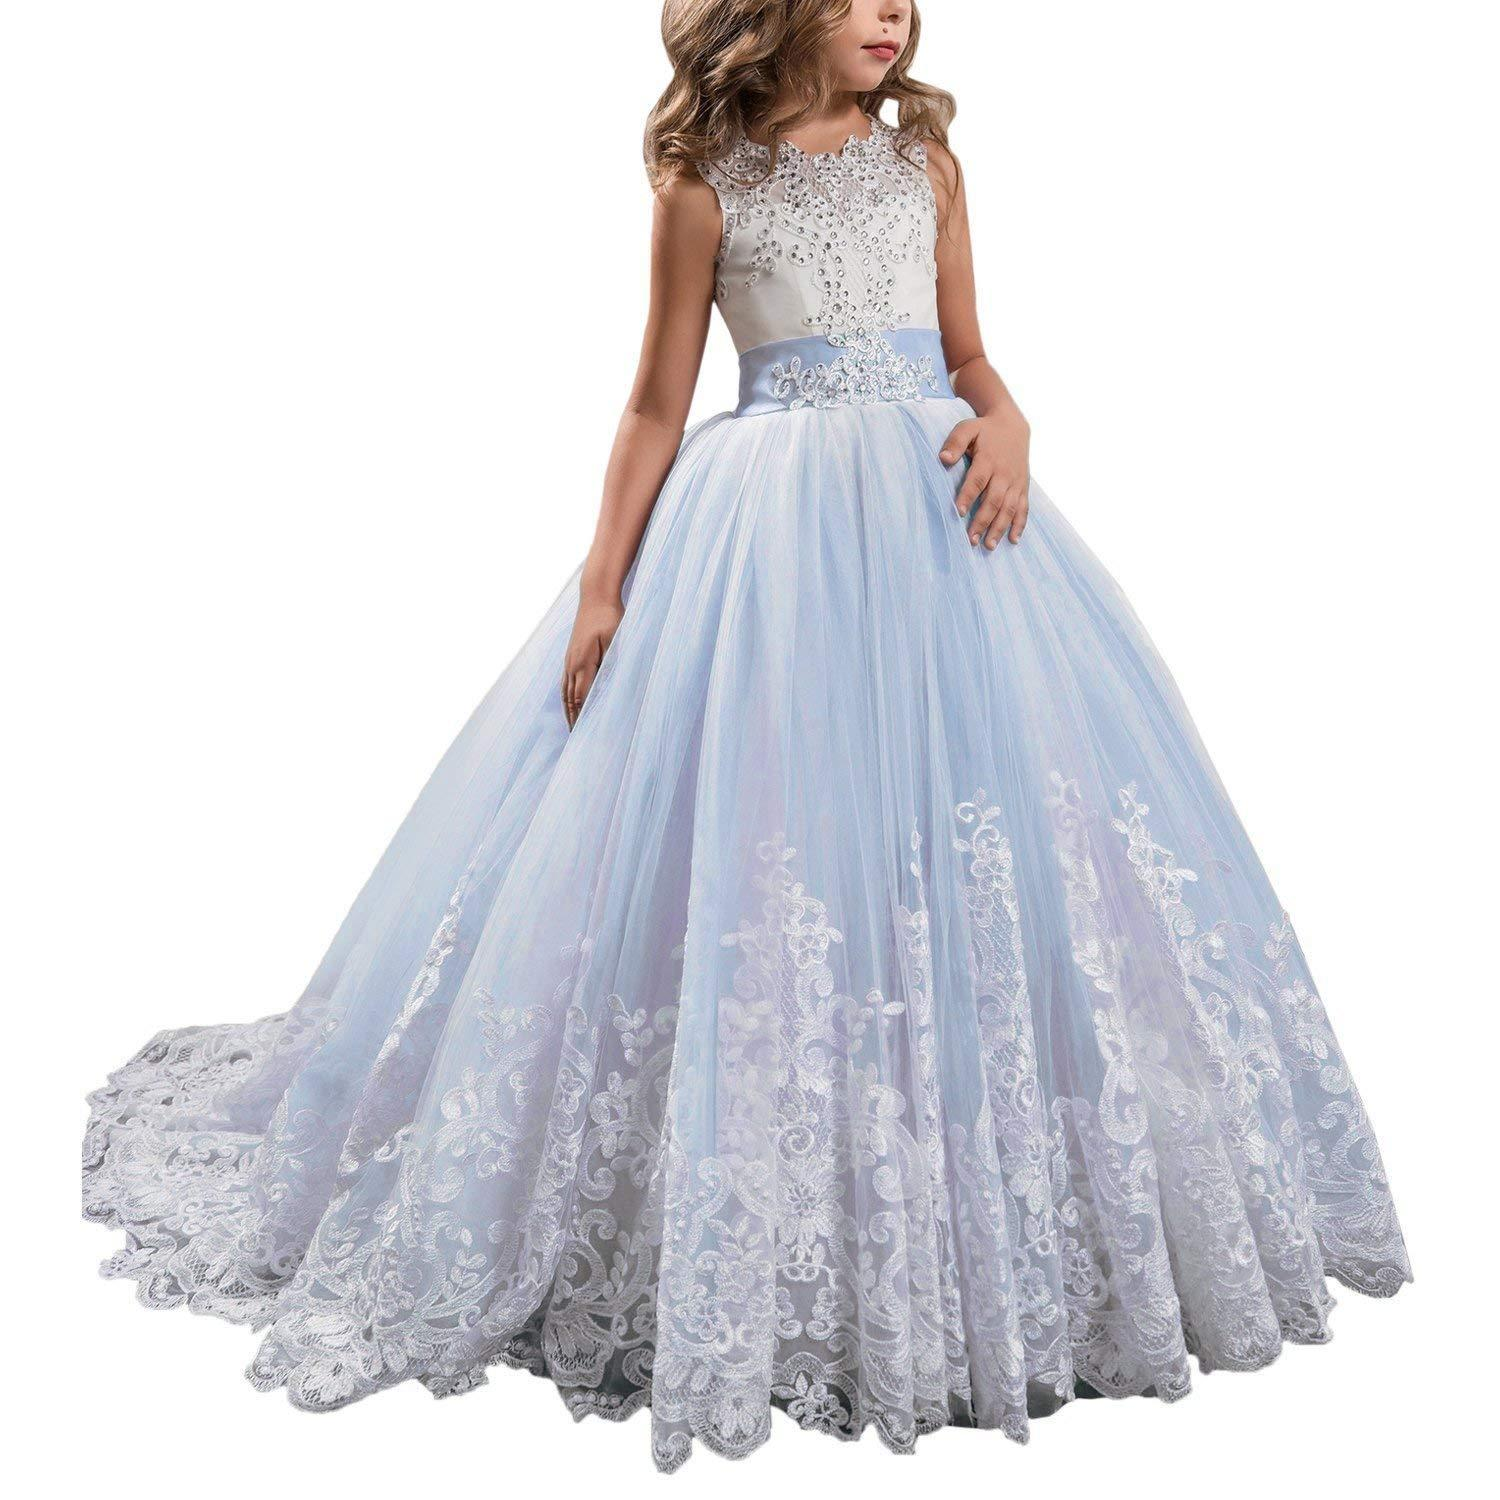 Princess Lilac Long Girls Pageant Dresses Kids Prom Puffy Tulle Ball Gown